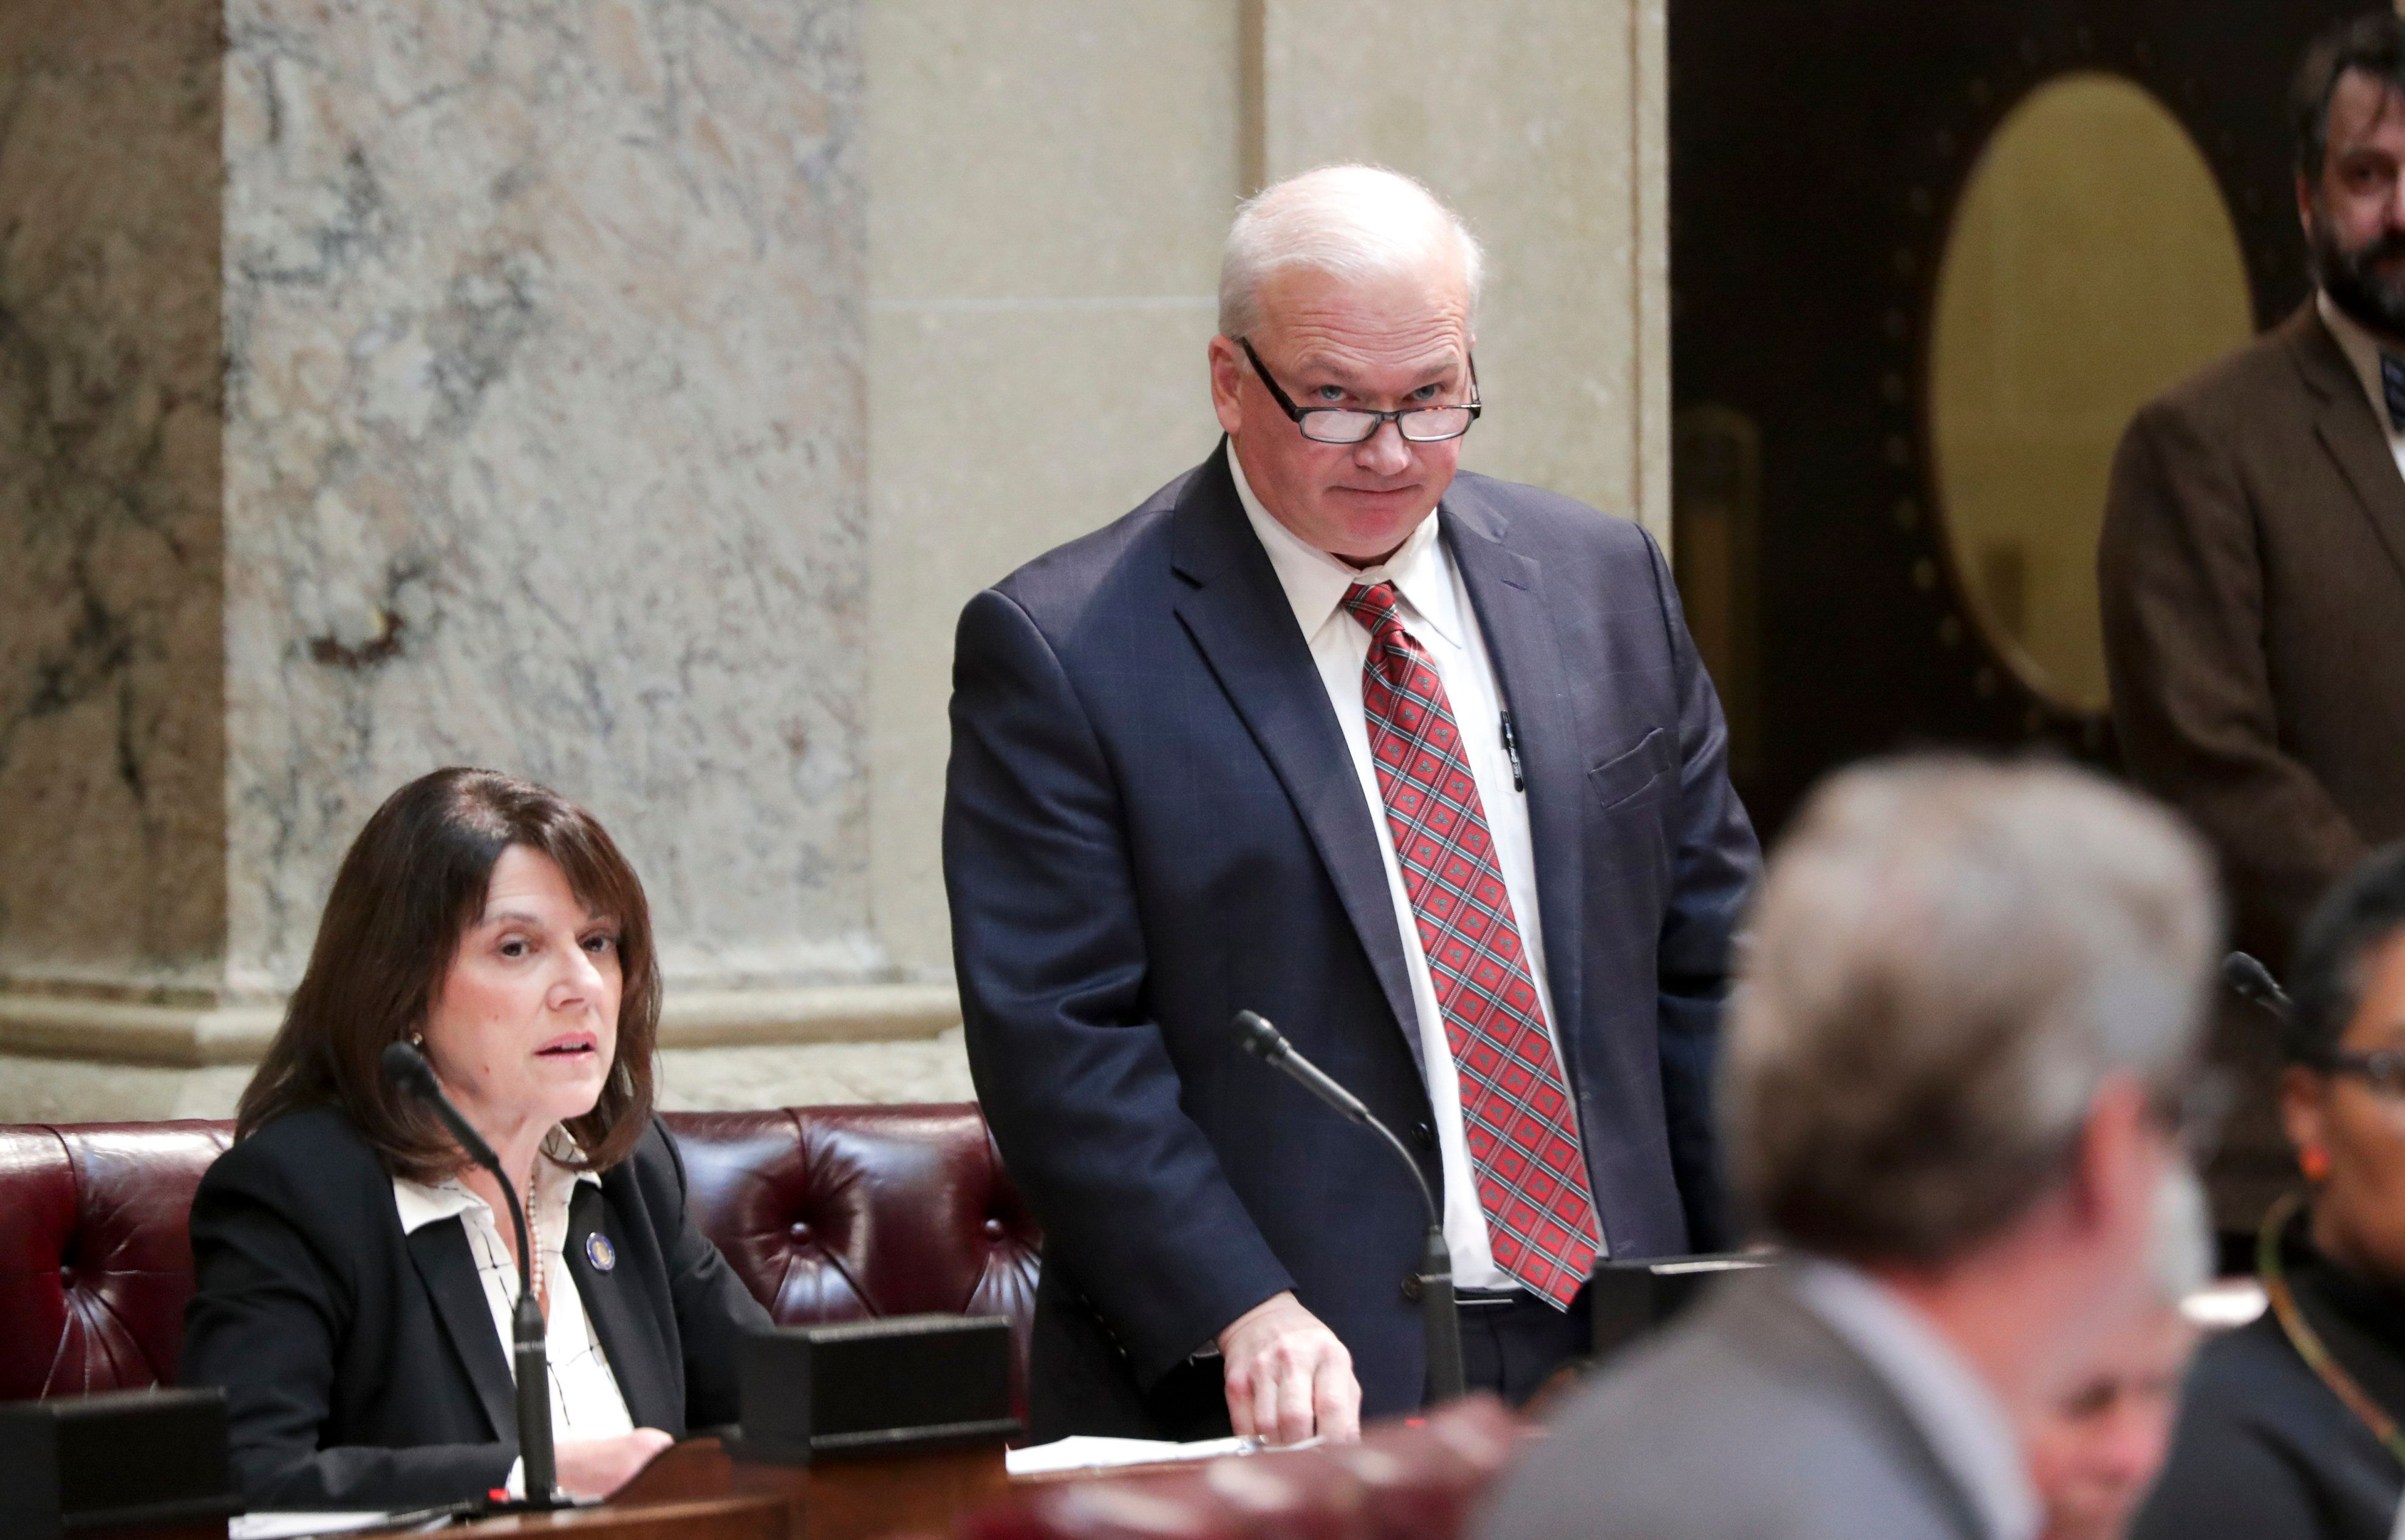 State Senate Majority Leader Scott Fitzgerald, R - Juneau, right, and State Sen. Leah Vukmir, R - Brookfield, listen during a special session of the senate, Tuesday Dec. 4, 2018, at the Capitol in Madison, Wis. (Steve Apps/Wisconsin State Journal via AP)